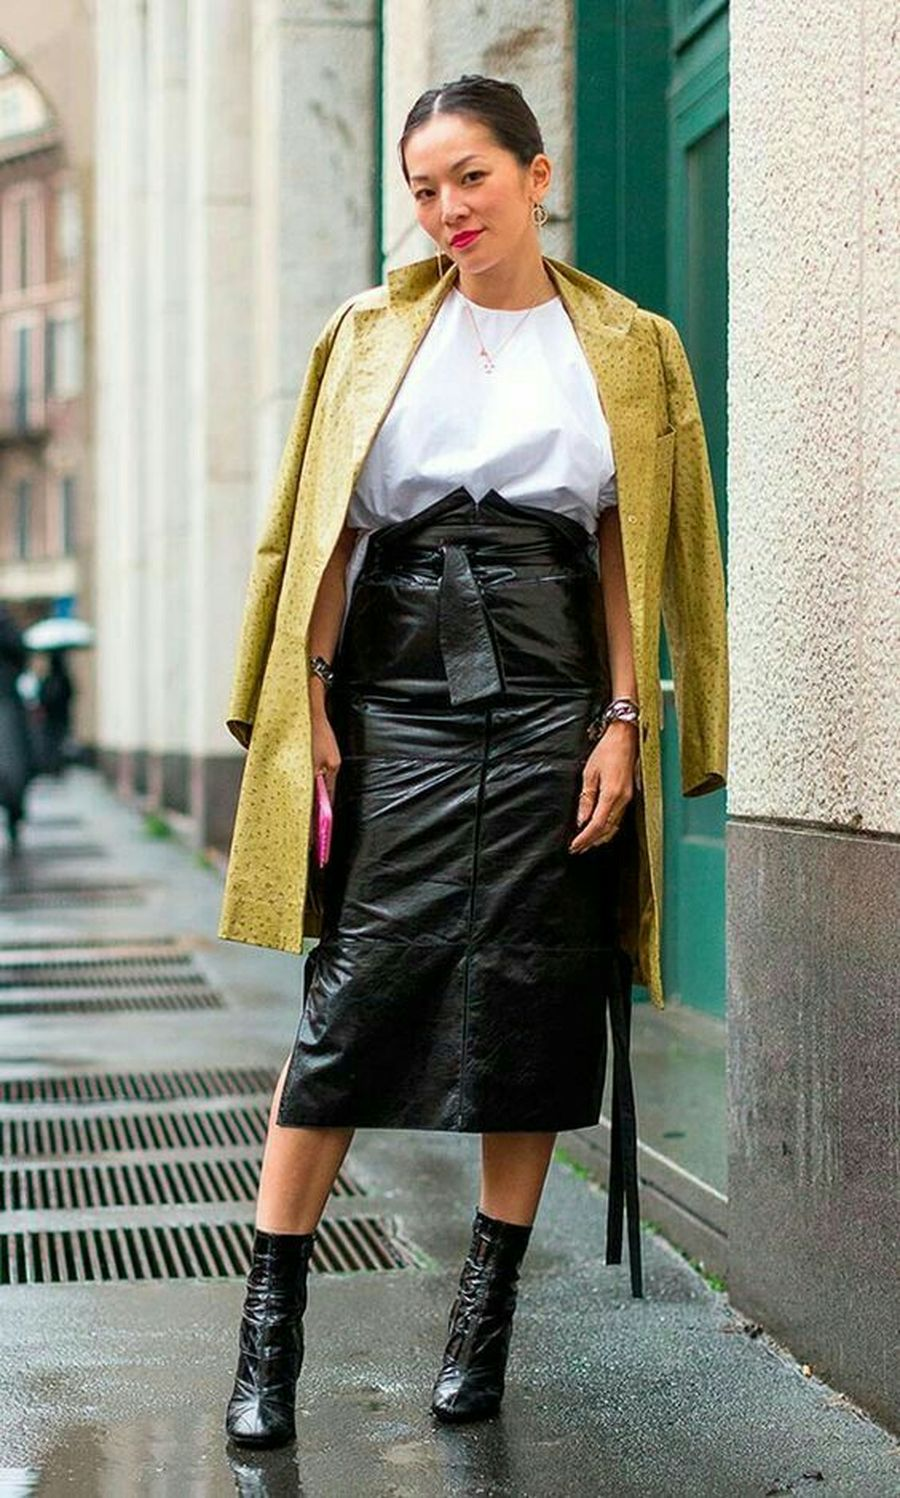 Inspiring skirt and boots combinations for fall and winter outfits 20